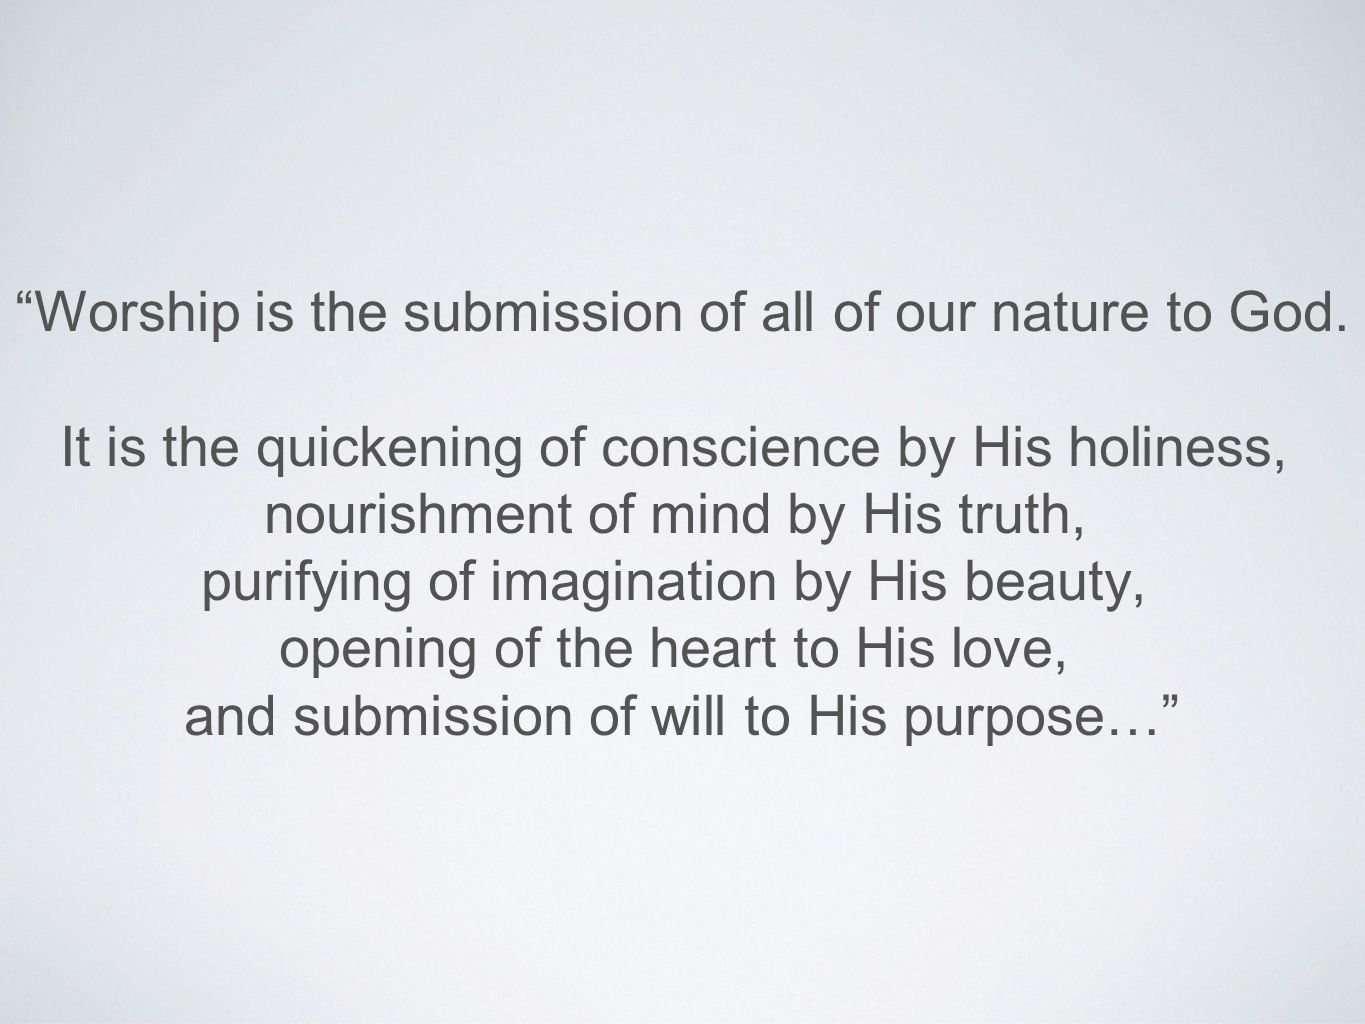 Worship is the submission of all of our nature to God.